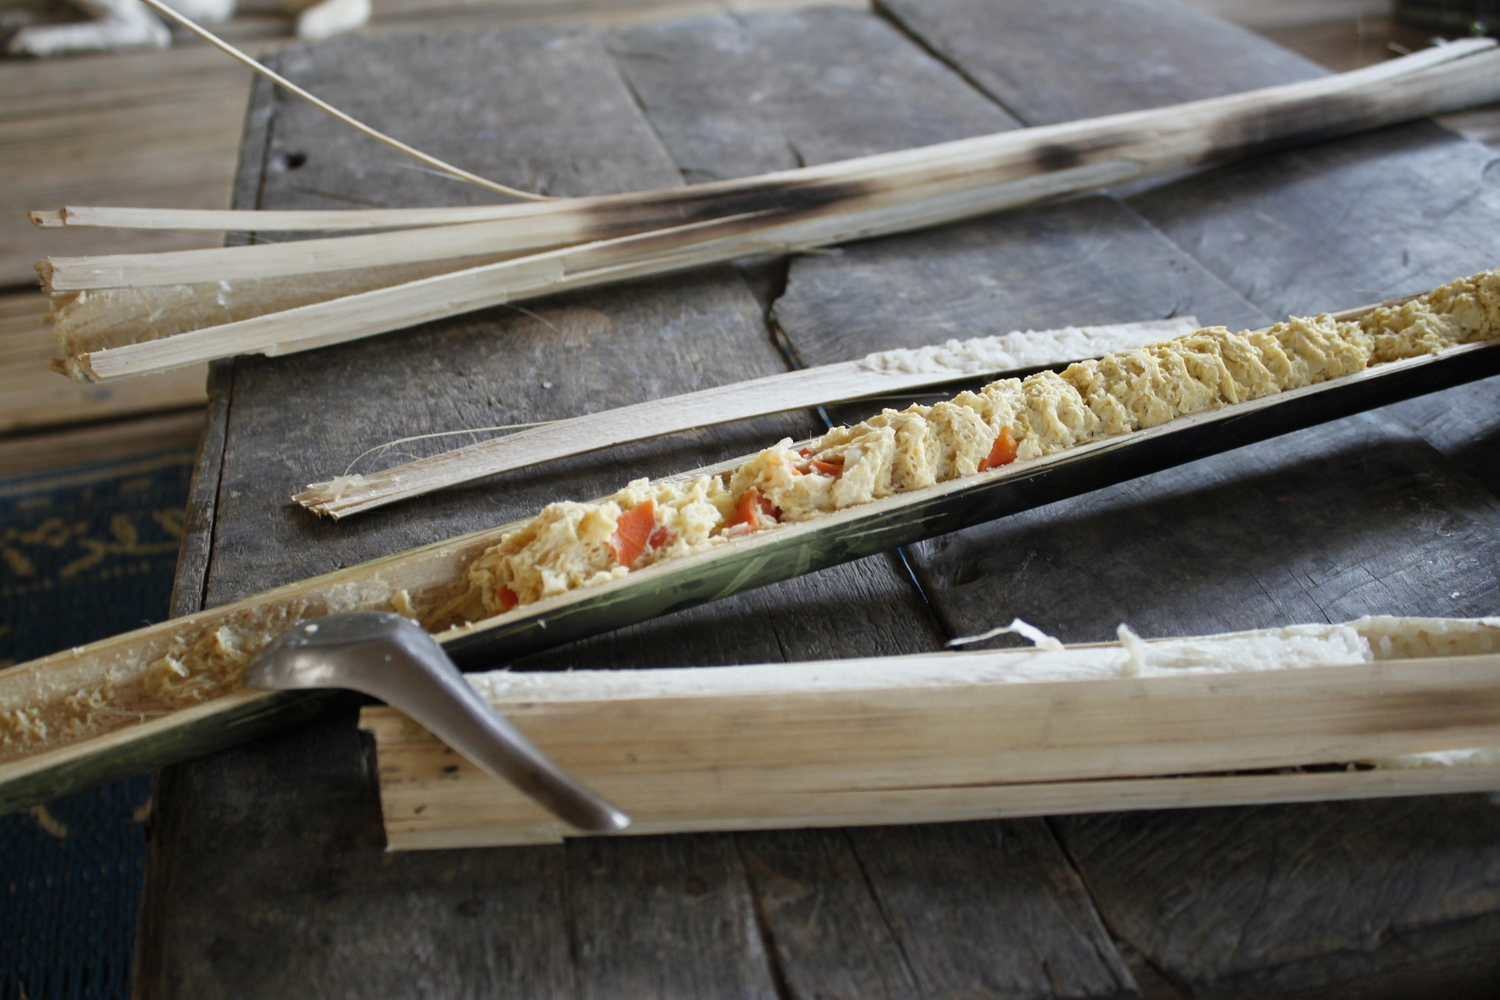 Sticky rice, eggs and vegetables cooked inside pieces of bamboo